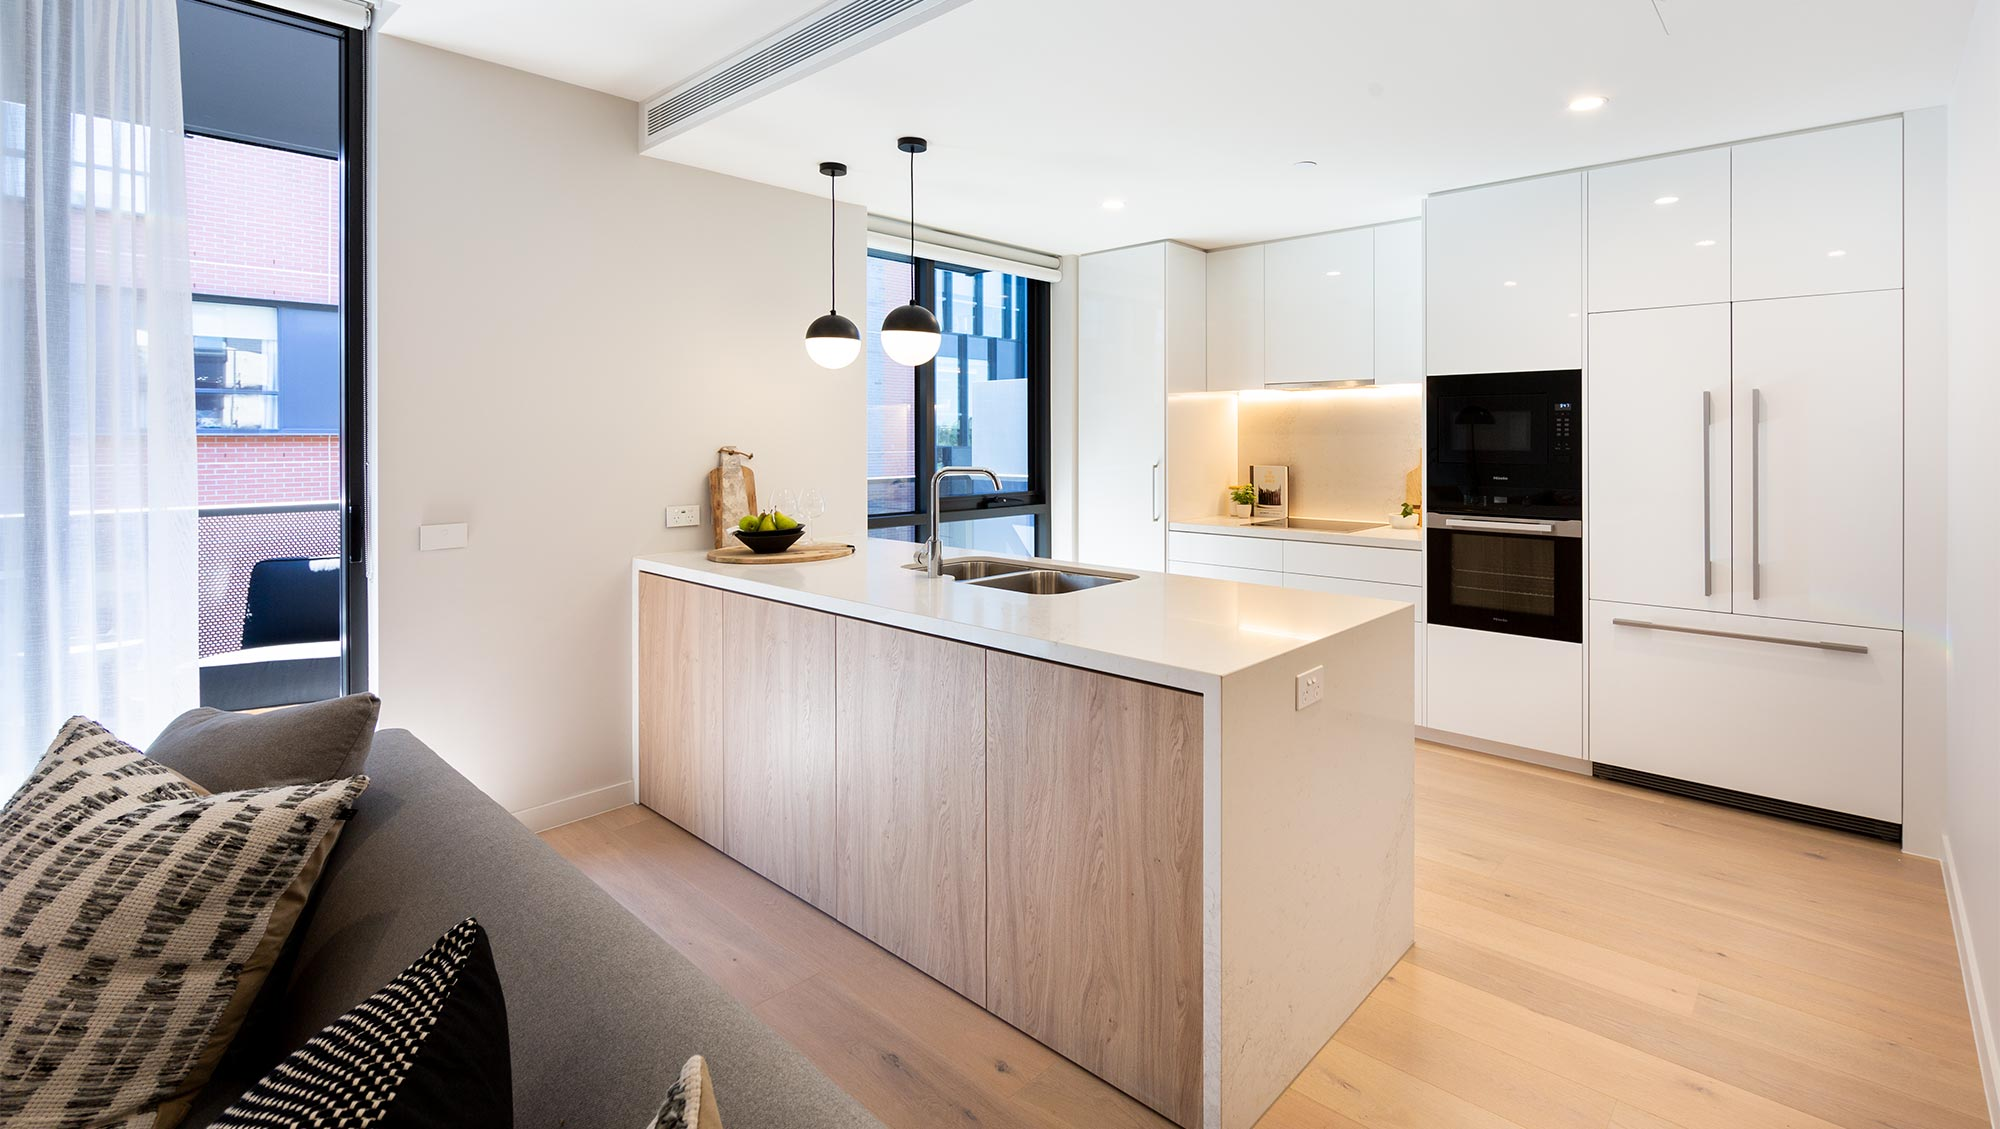 Retirement apartment kitchen at Baptcare The Orchards Templestowe